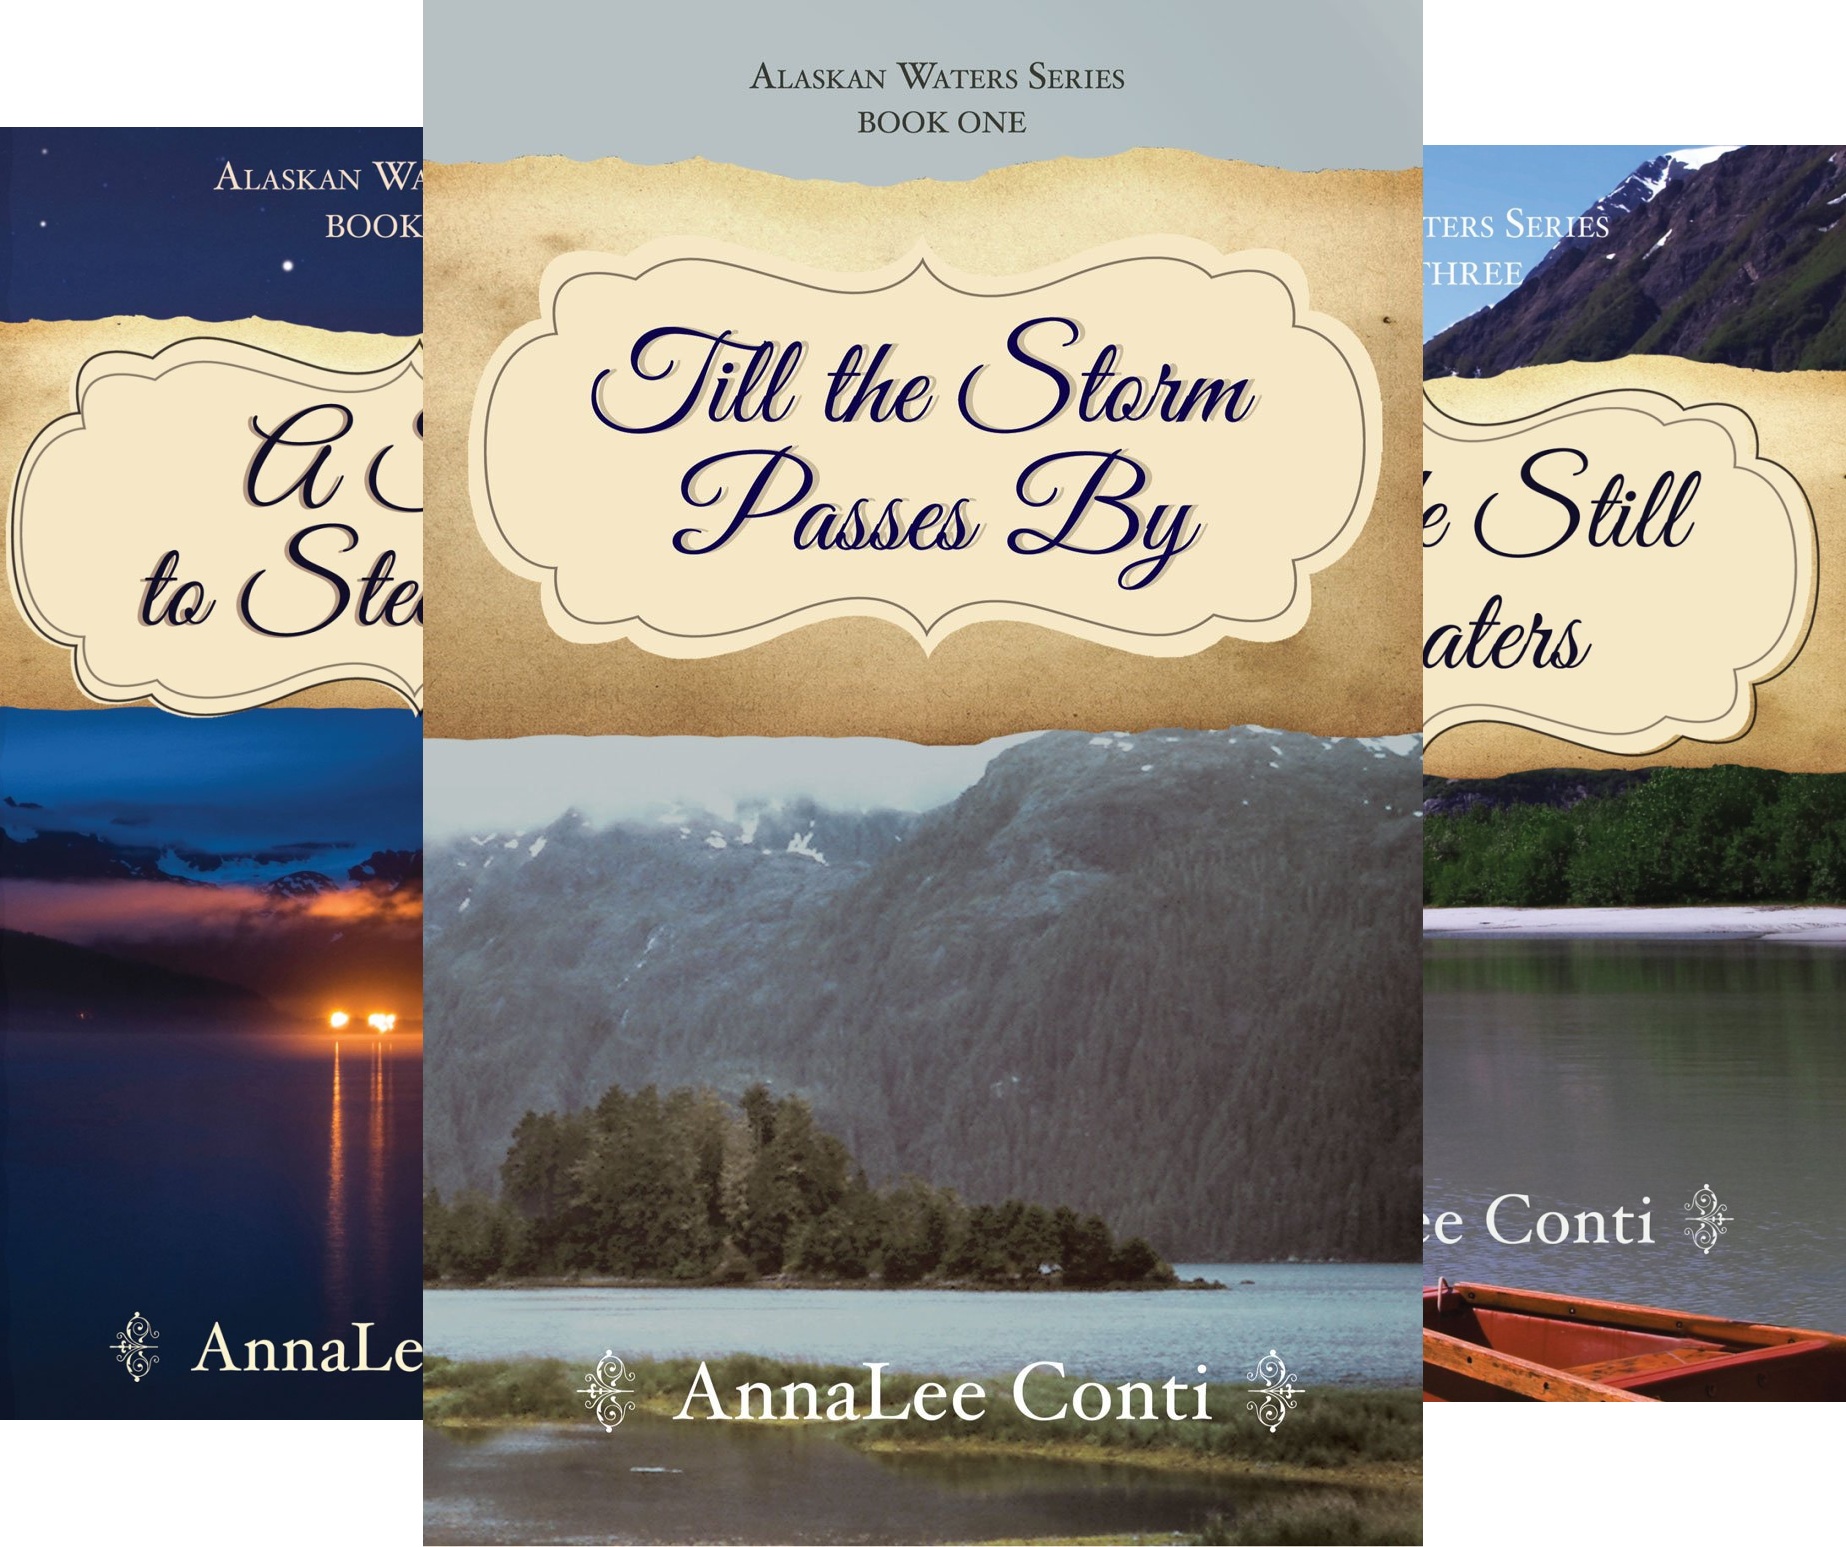 Alaskan Waters Series (3 Book Series)